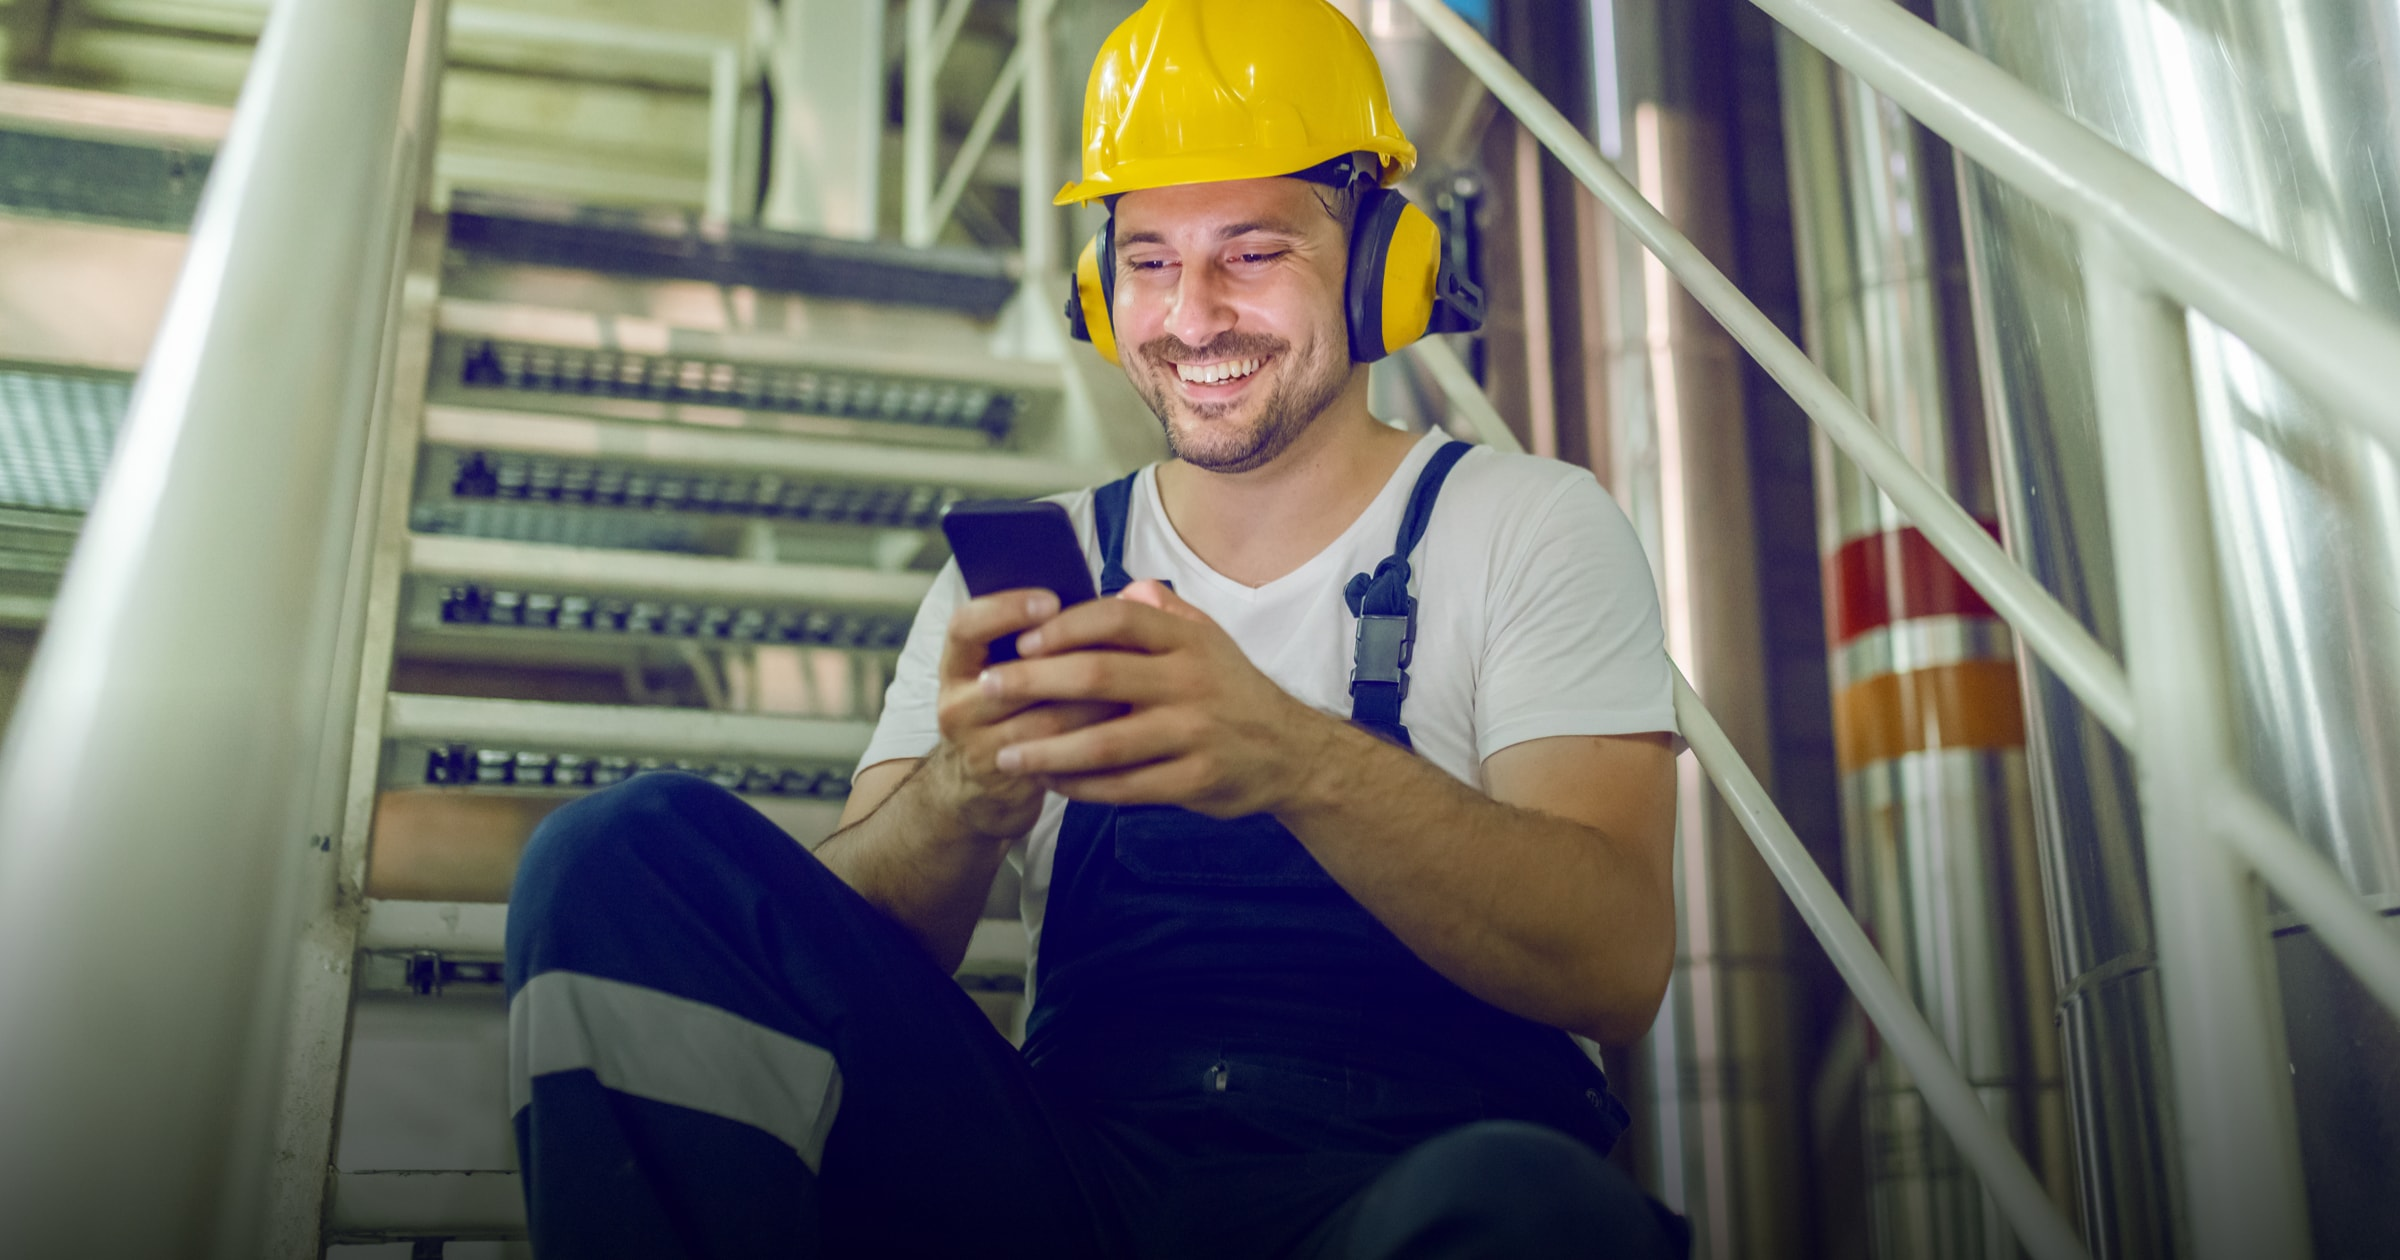 Frontline worker in factory uses employee app to connect and engage with coworkers